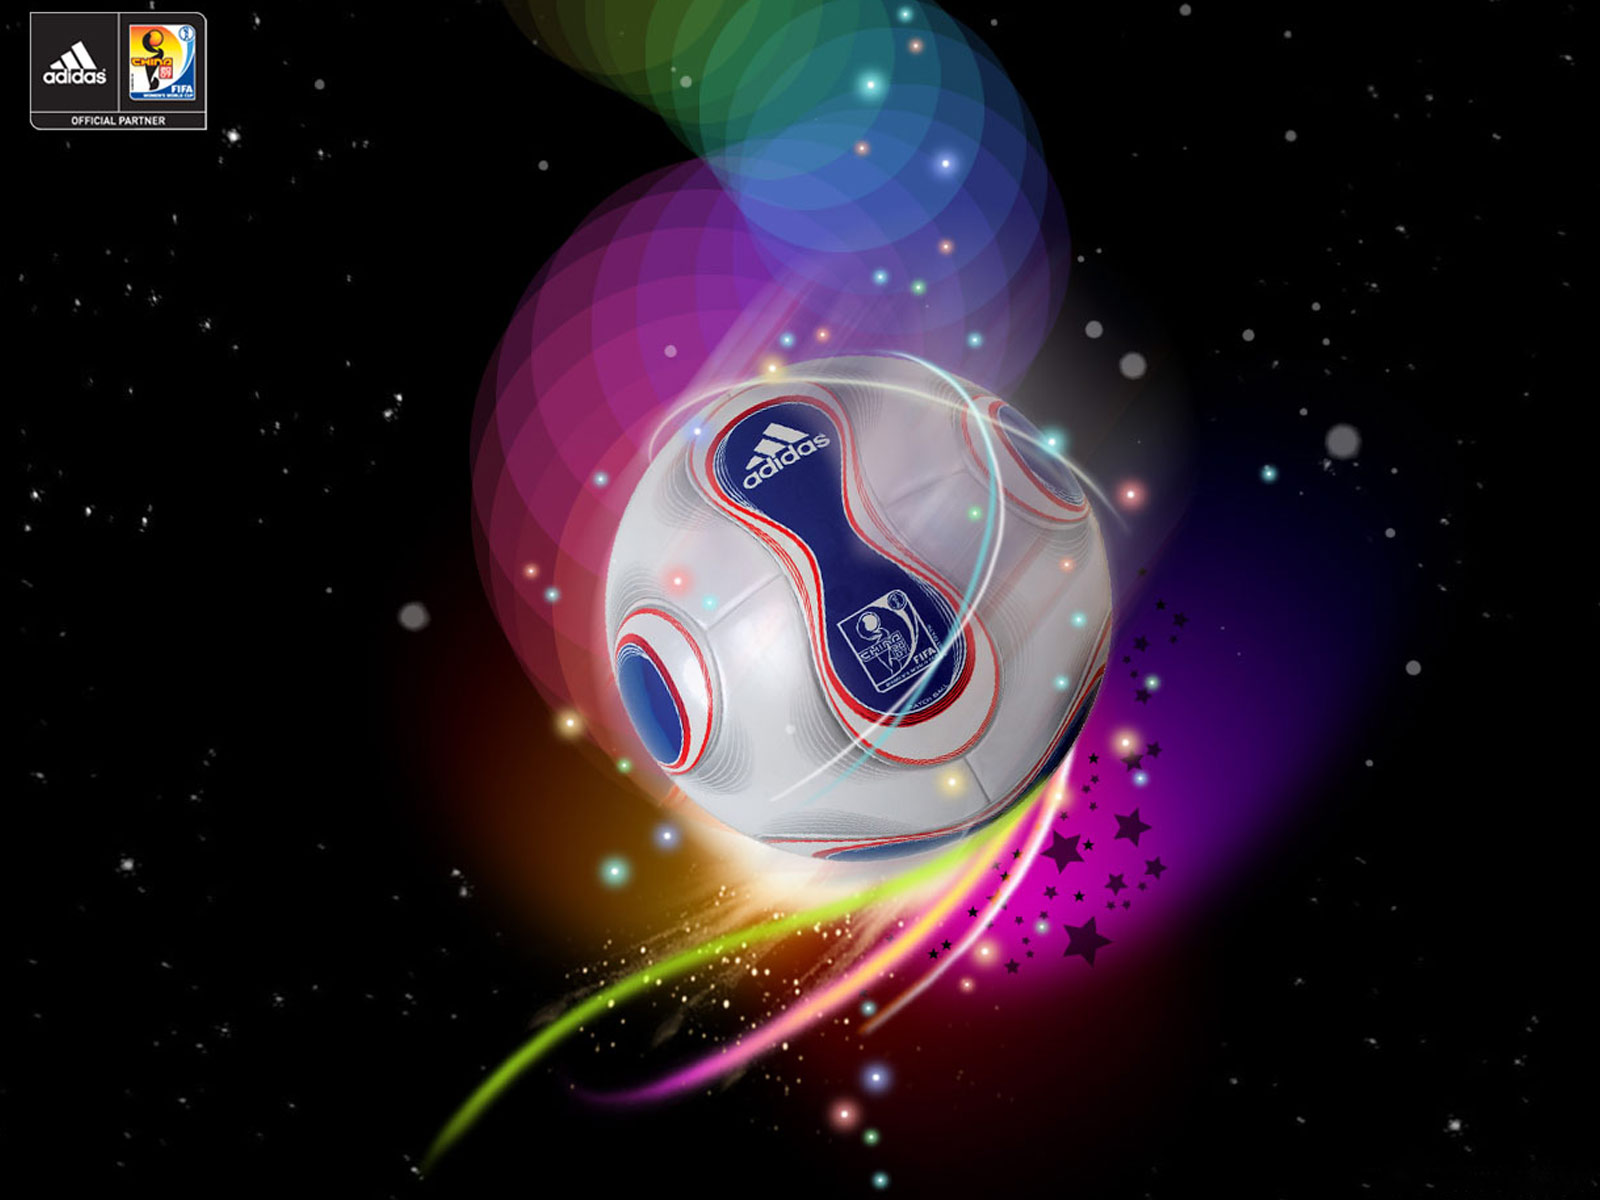 http://2.bp.blogspot.com/_enVLP57PrXw/TC4QL5l-McI/AAAAAAAACKw/CD_RH0SnvIw/s1600/FIFA_World_Cup_Wallpapers_2.jpg